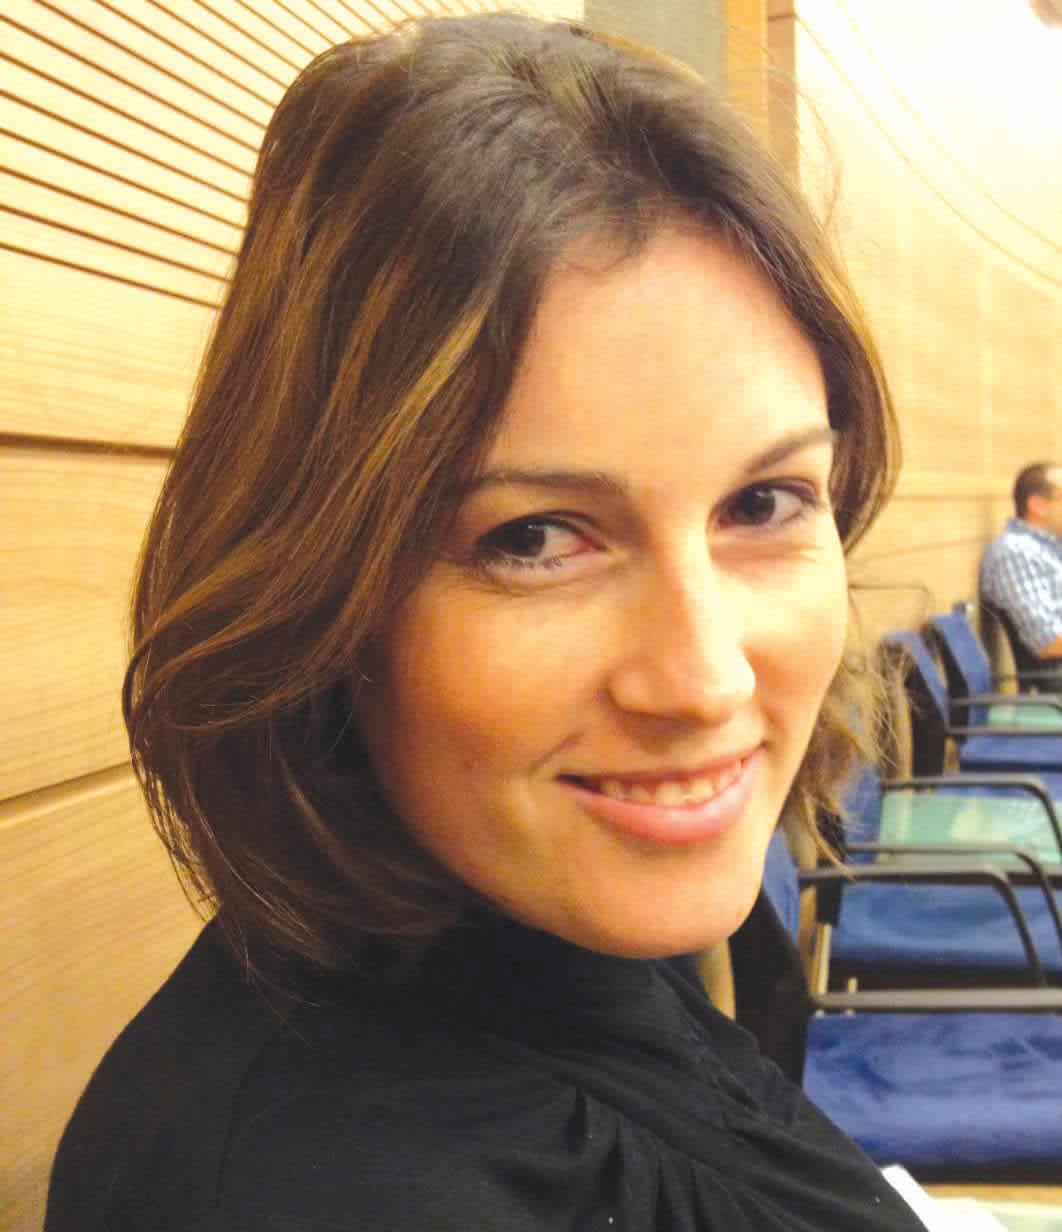 RACHEL GUR is an adviser to Environmental Protection Minister Ze'ev Elkin (Likud) and is thought to be the only female native English speaking adviser to a cabinet minister. She made aliya at age 17 from Baltimore. (Courtesy)